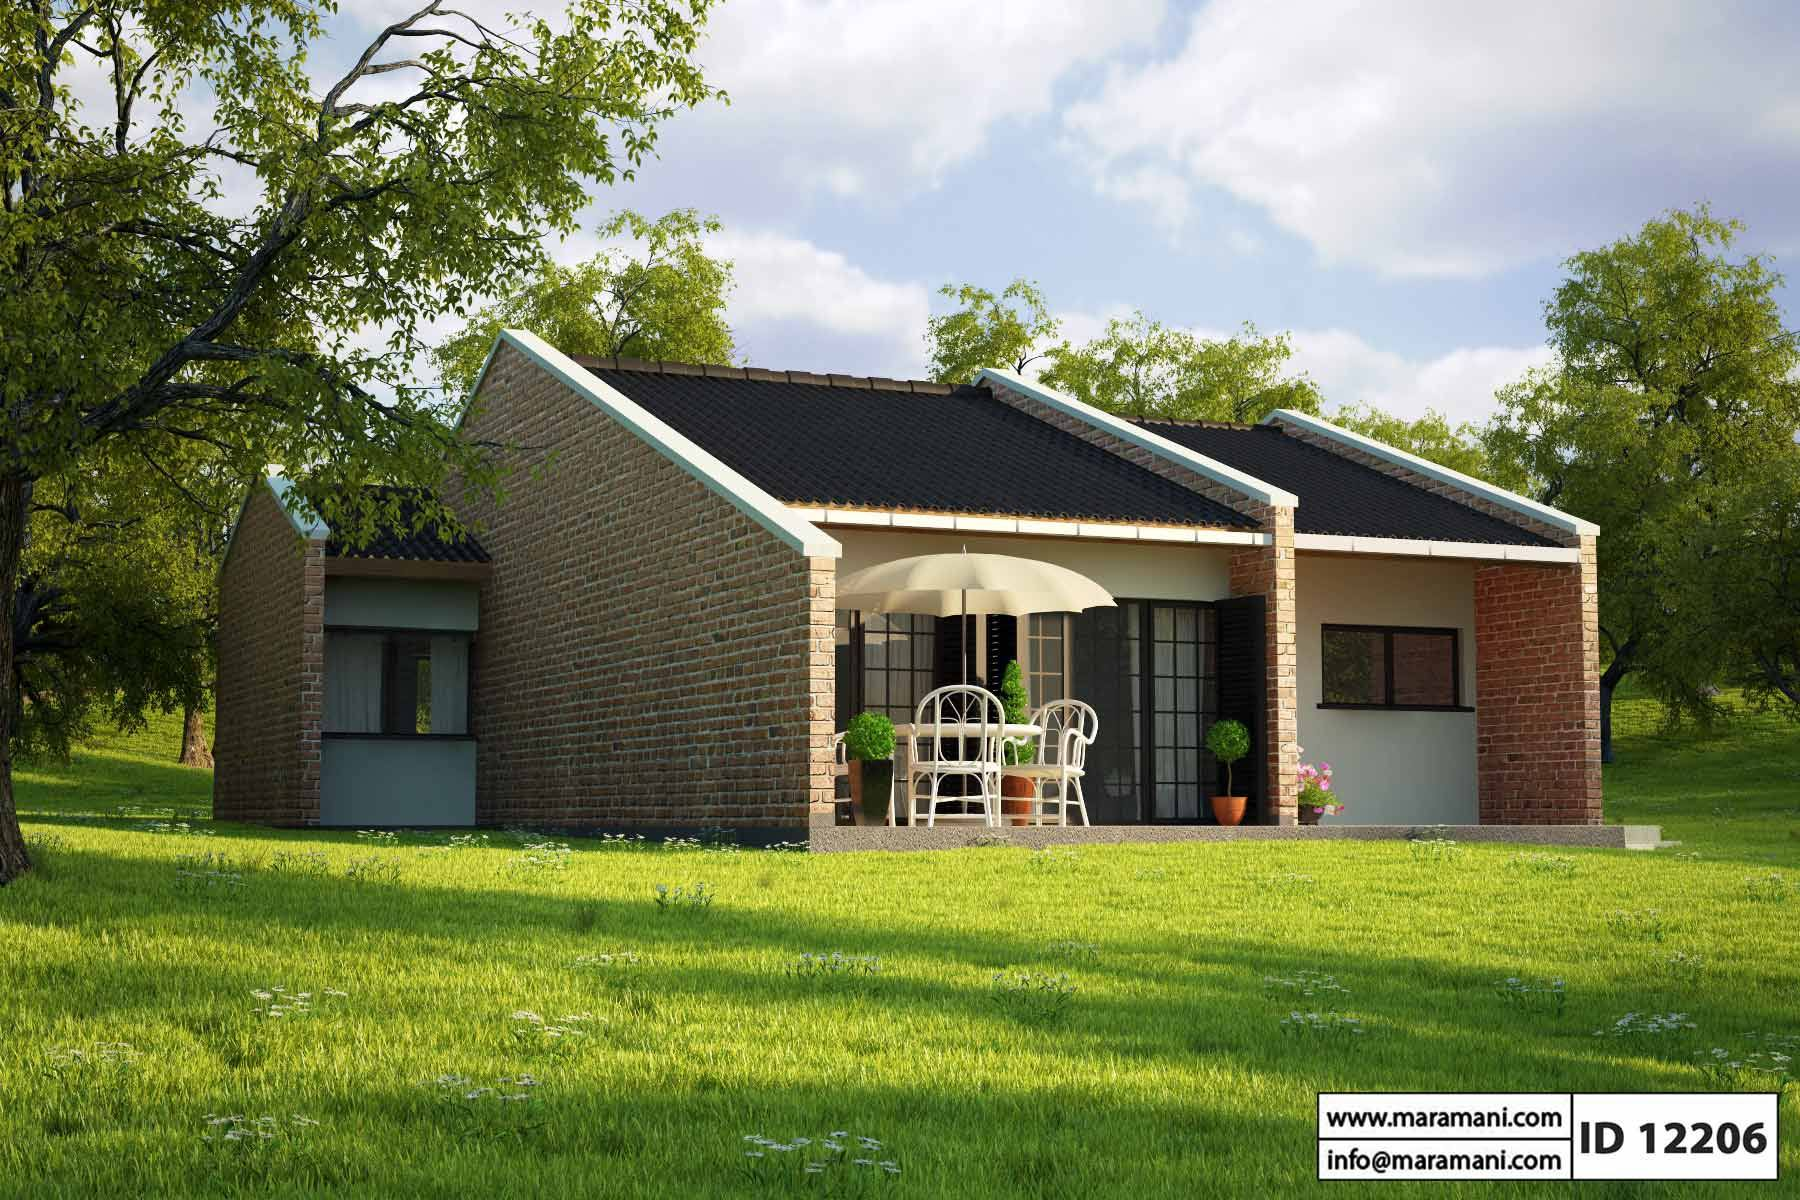 Extraordinary 10 small brick house plans inspiration of for Brick house designs